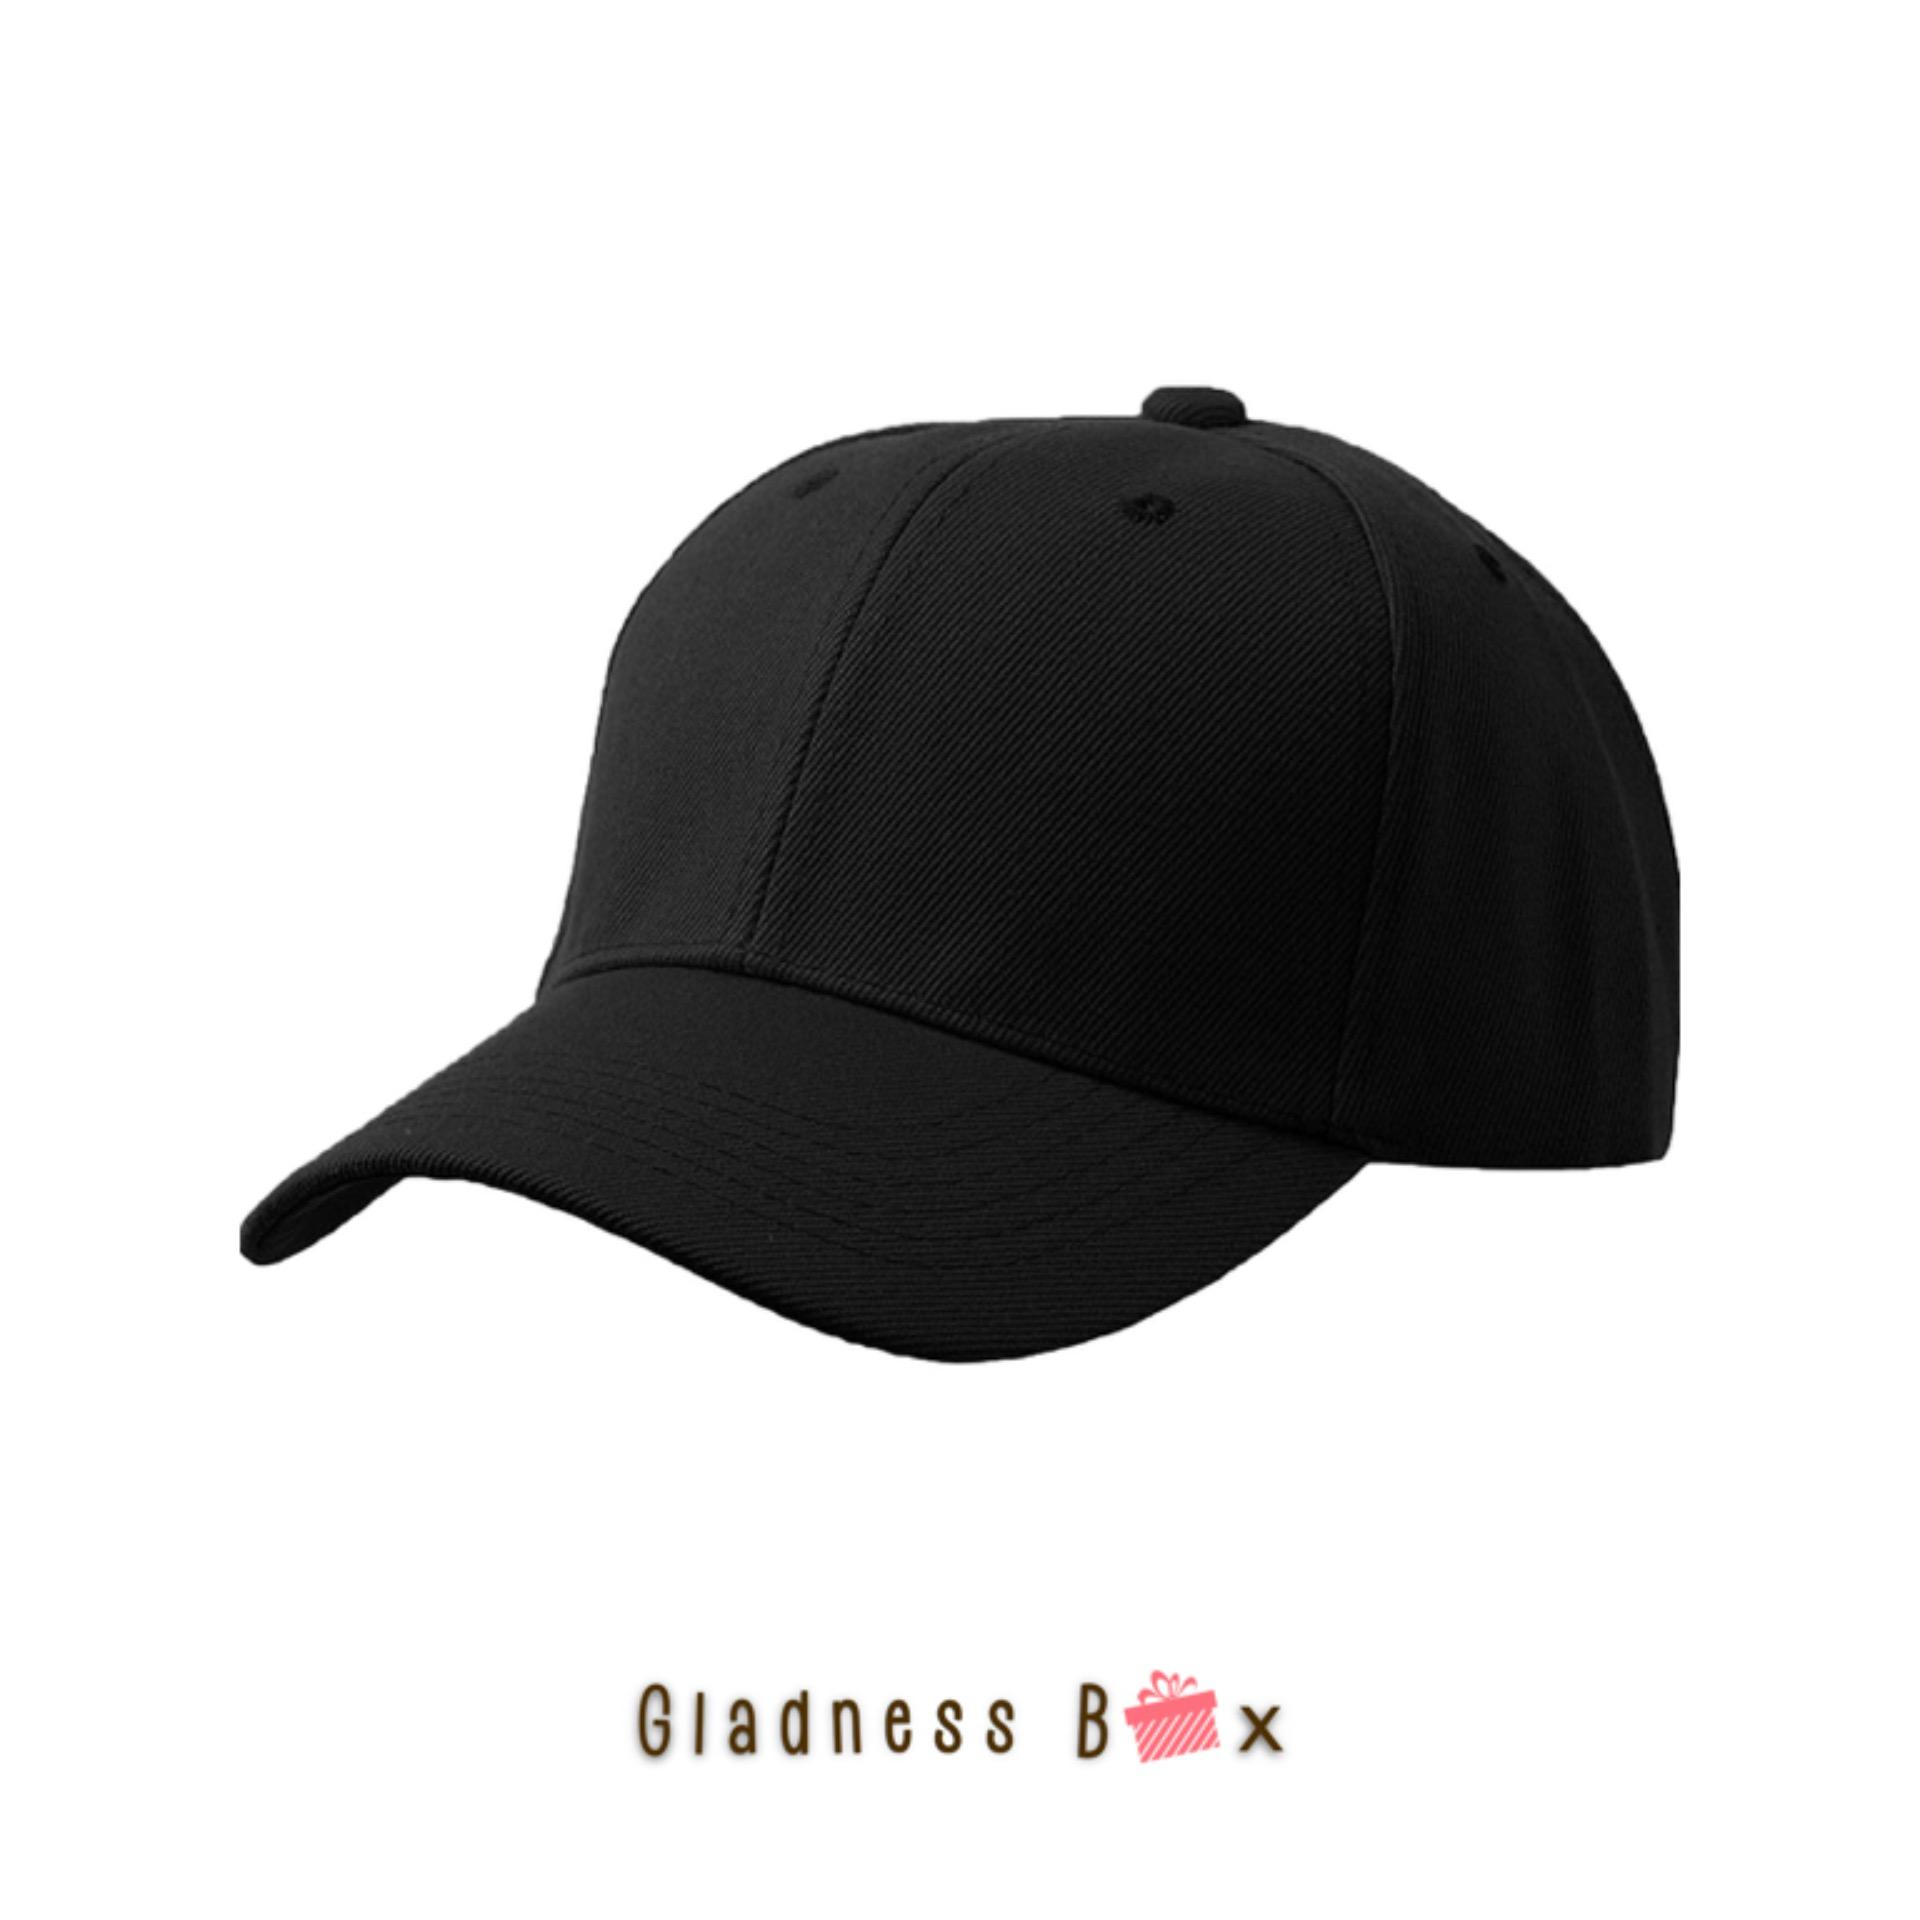 a55165c0b2f Gladness Box High Quality Plain Baseball Cap for Men Women Unisex